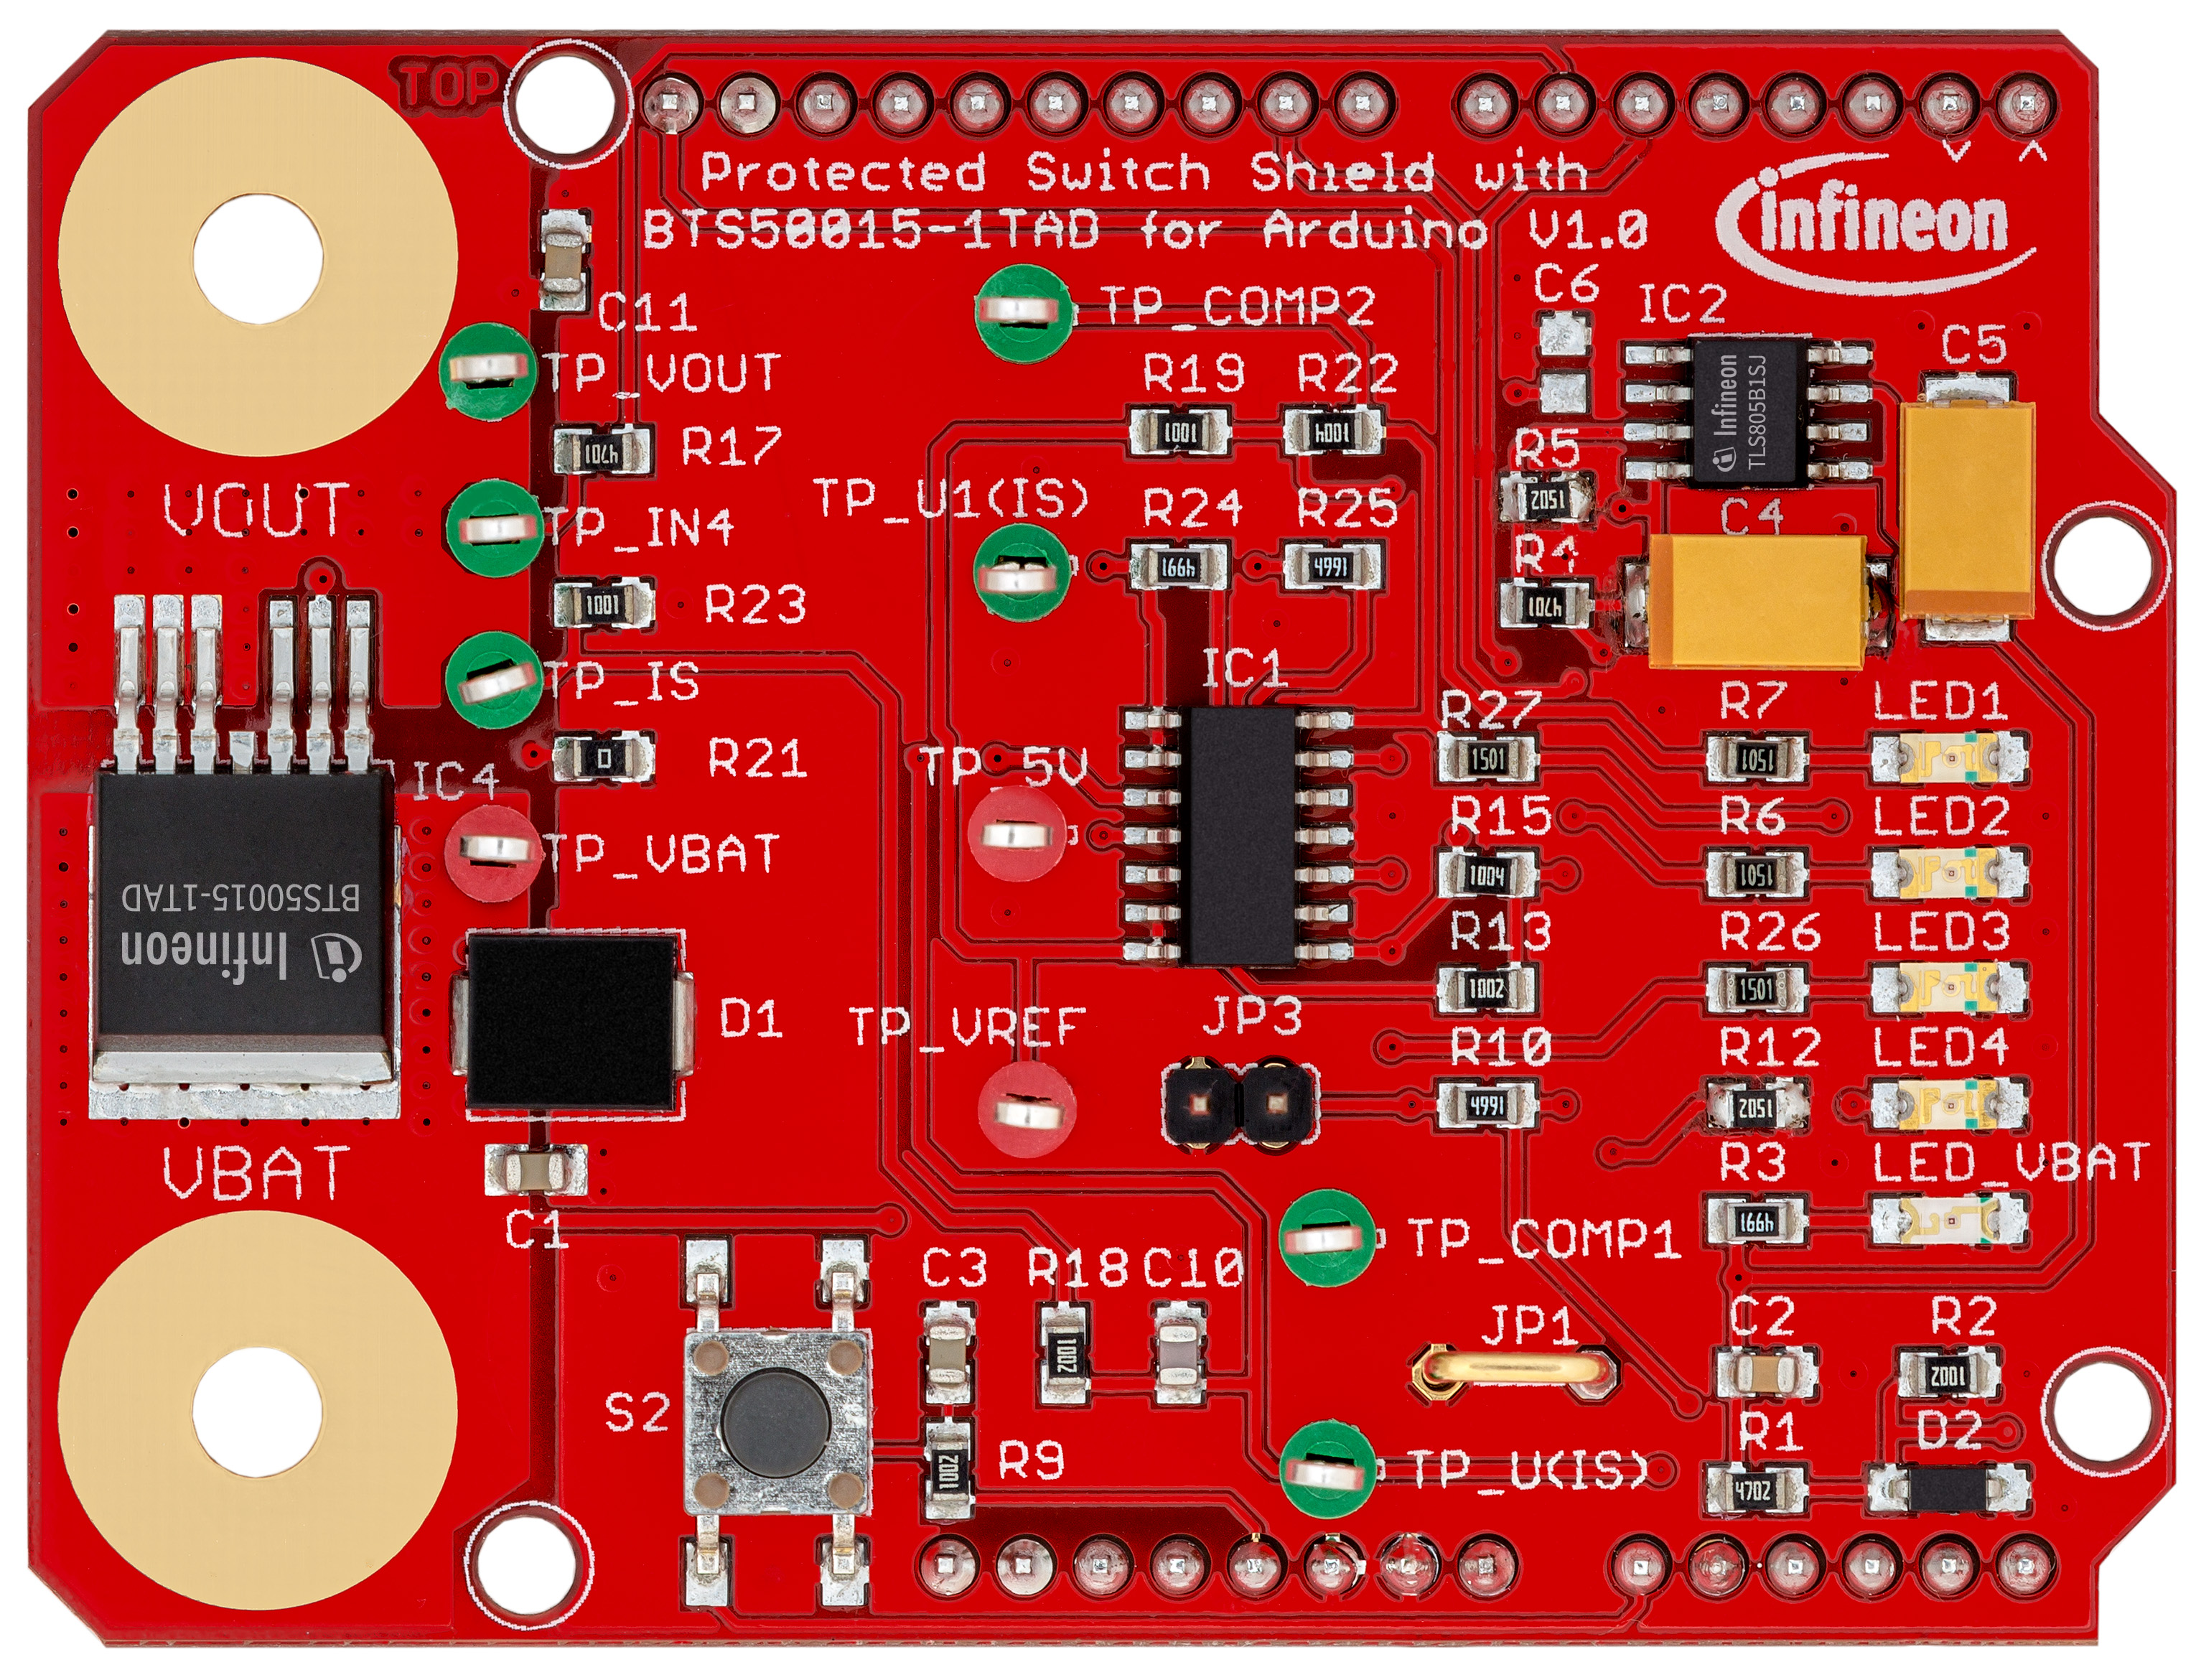 Protected_Switch_Shield_with_BTS50015-1TAD_for_Arduino_top view_plain